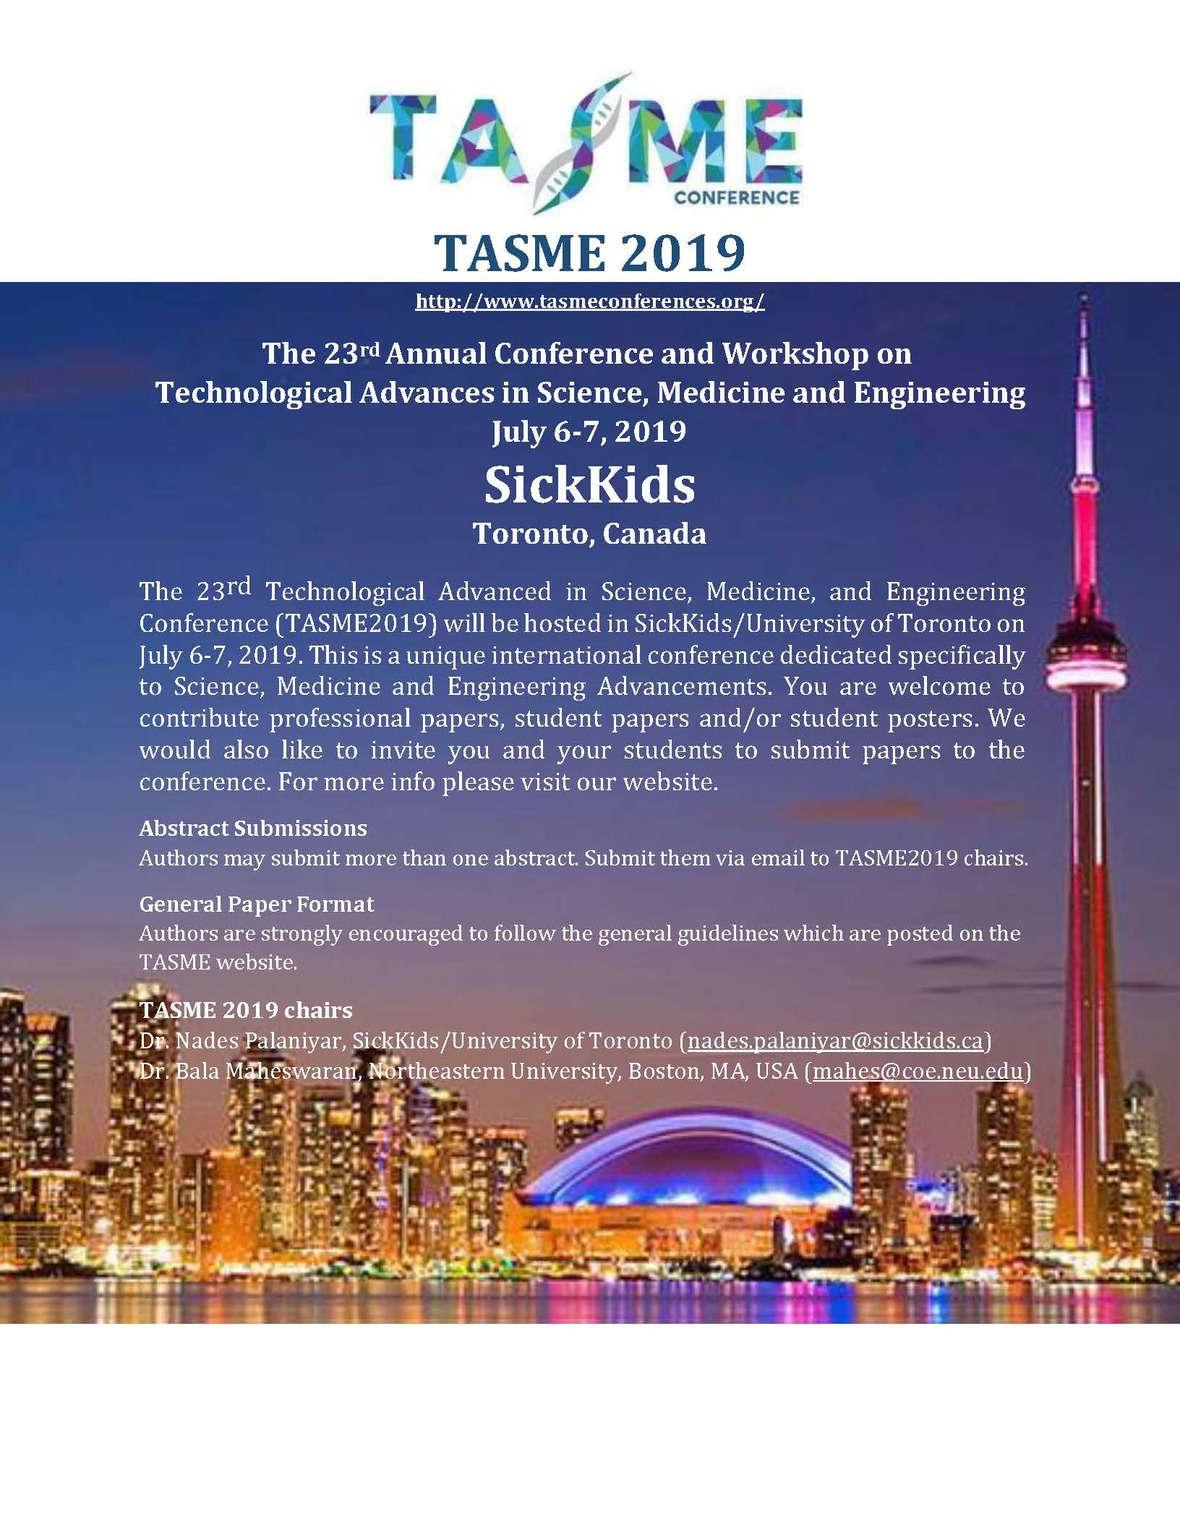 TASME2019 Conference – on July 6-7 at SickKids/University of Toronto2 √ / Inbox